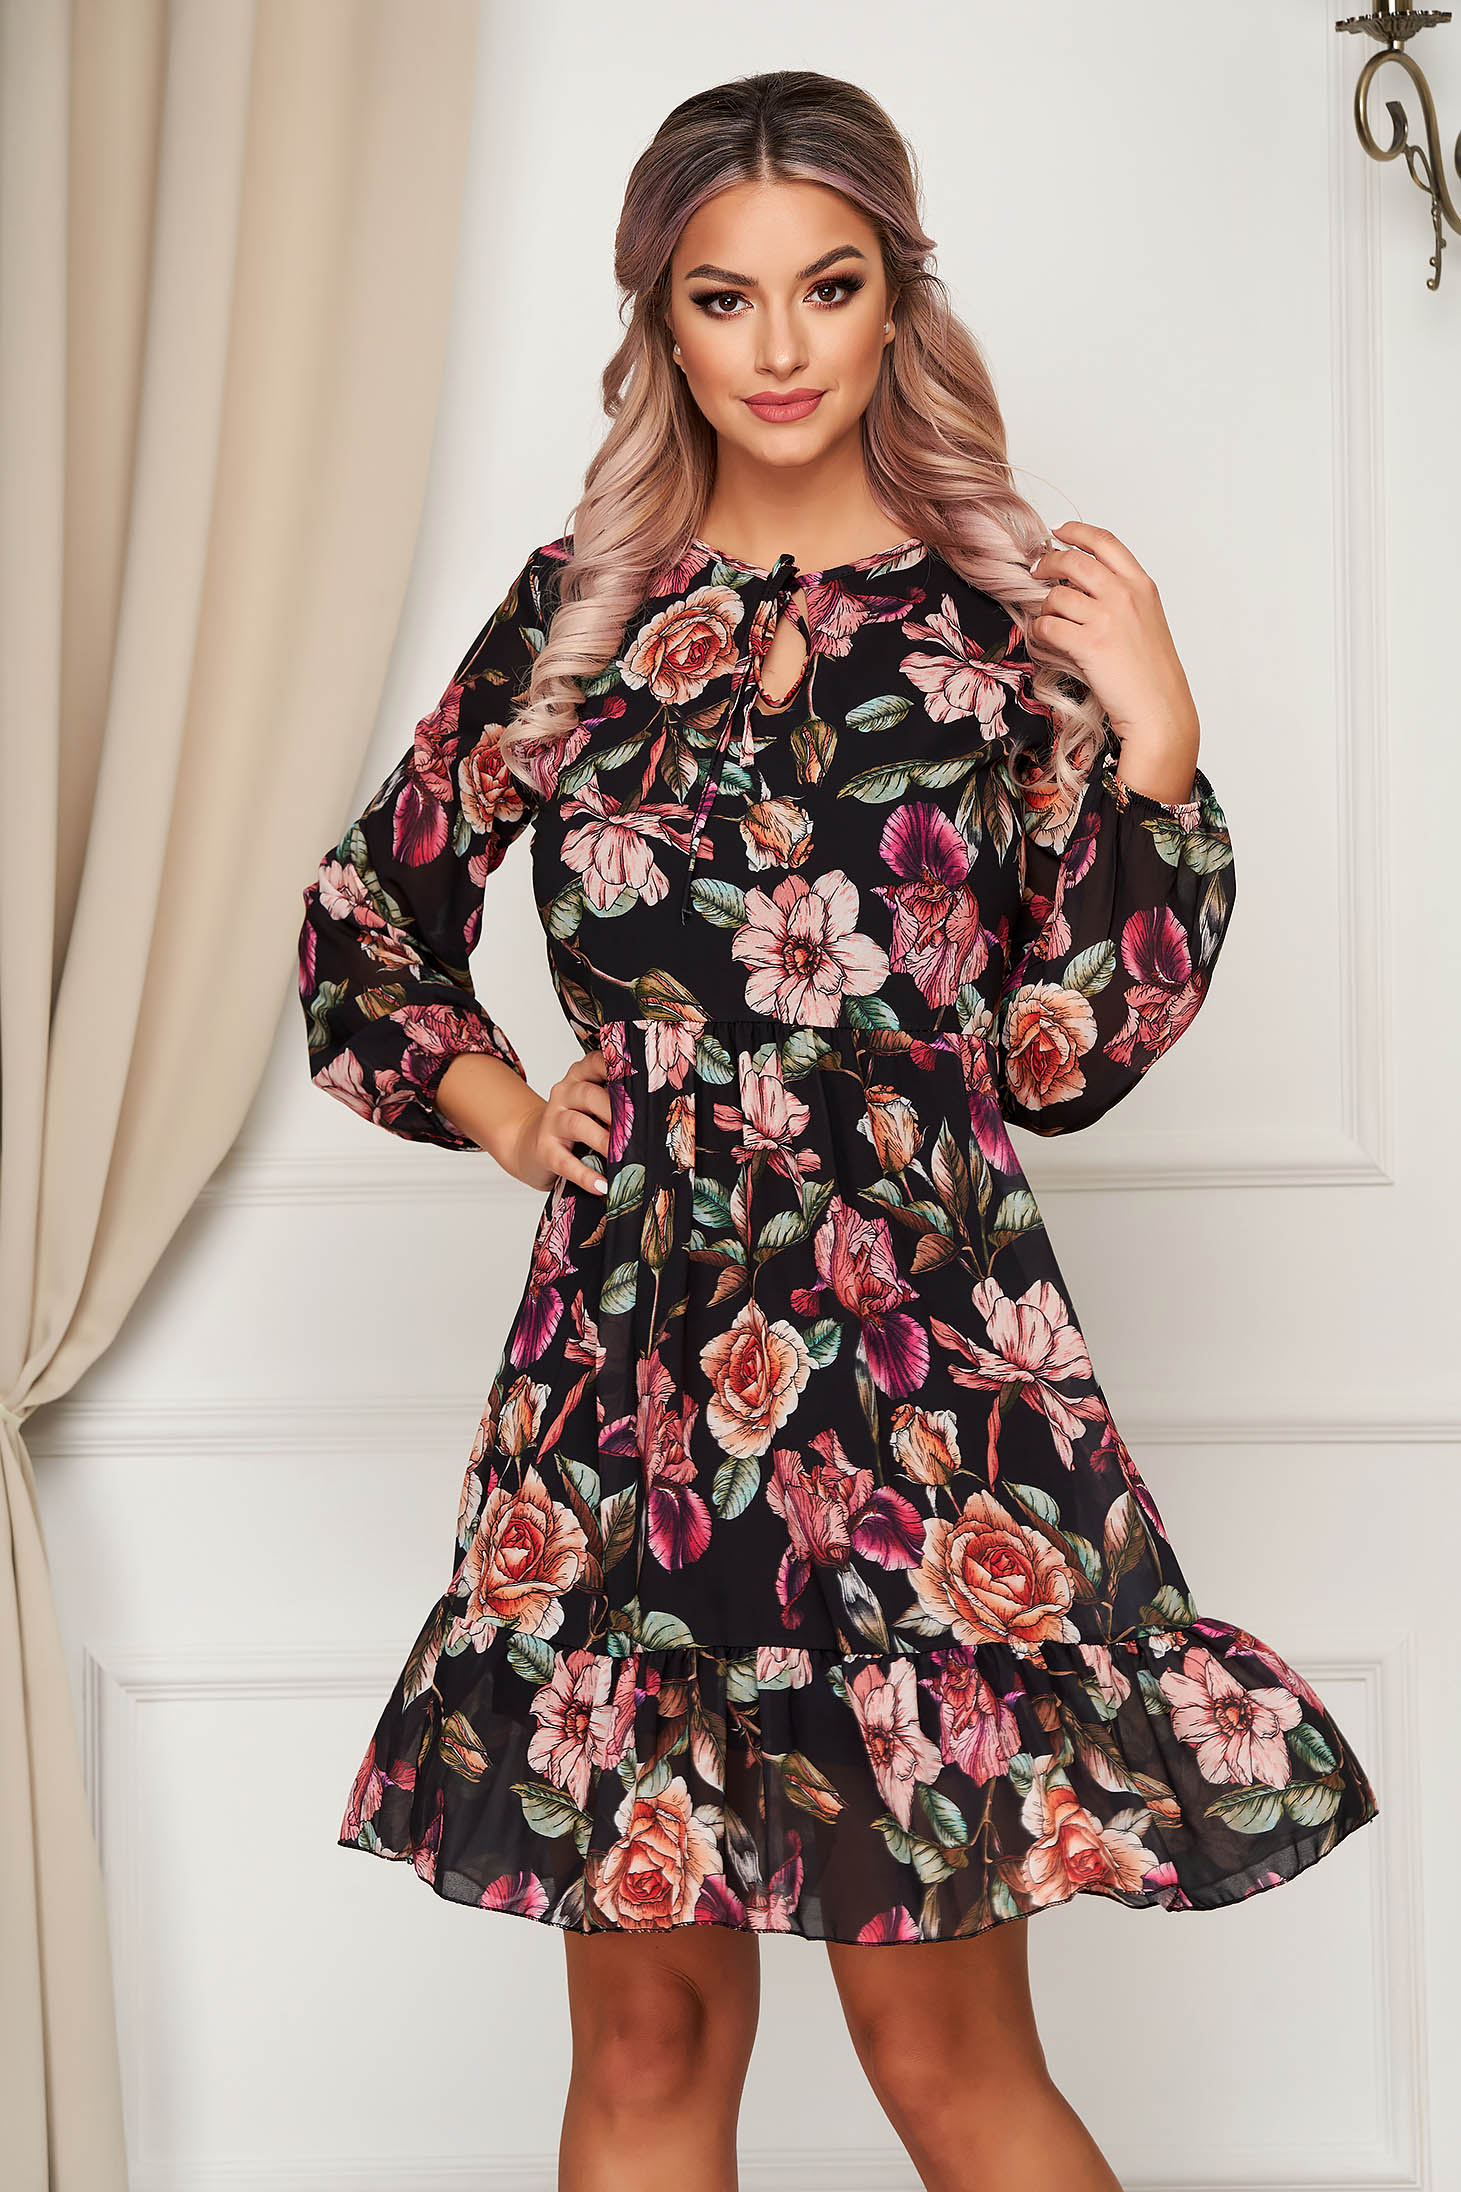 Black dress short cut daily from veil fabric flared with floral prints